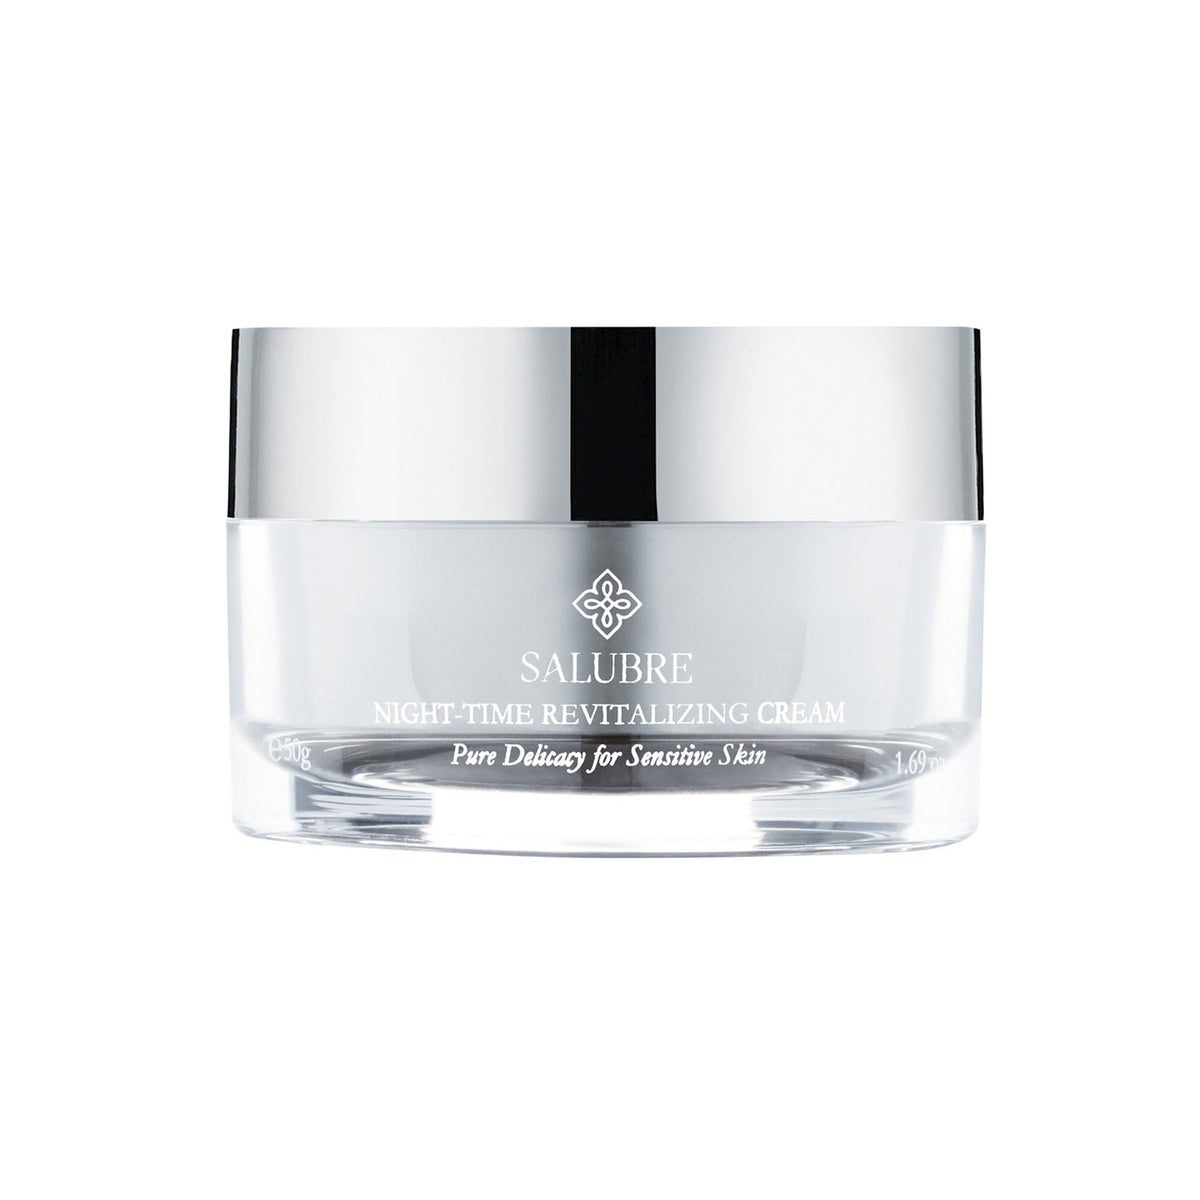 Night-time Revitalising Cream